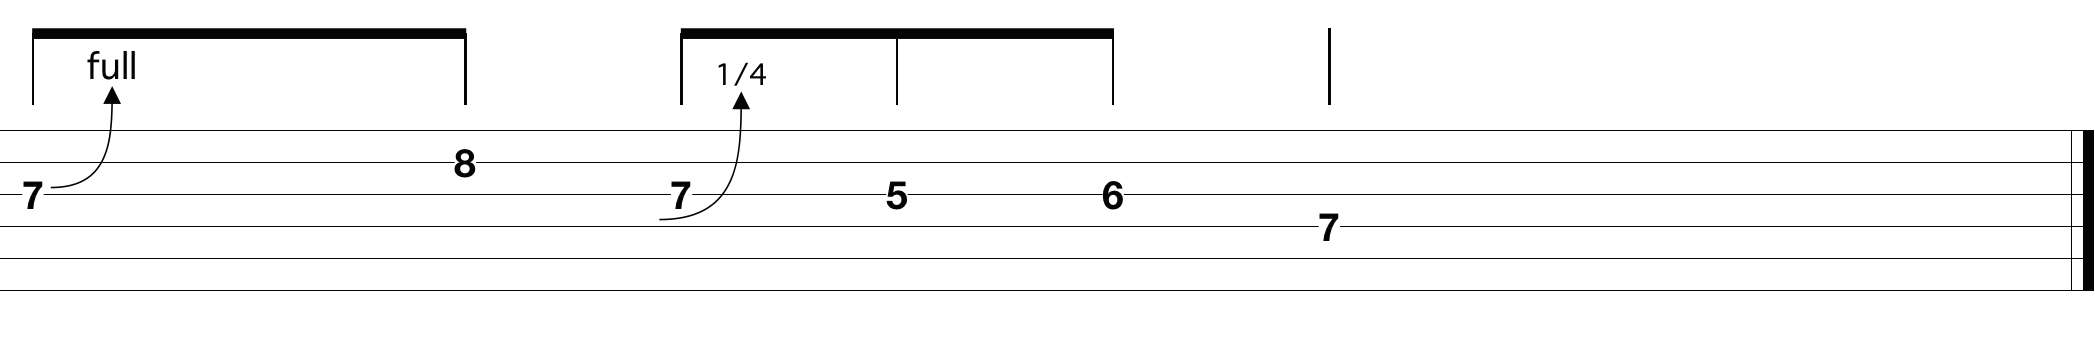 blues-tab-guitar_3.png